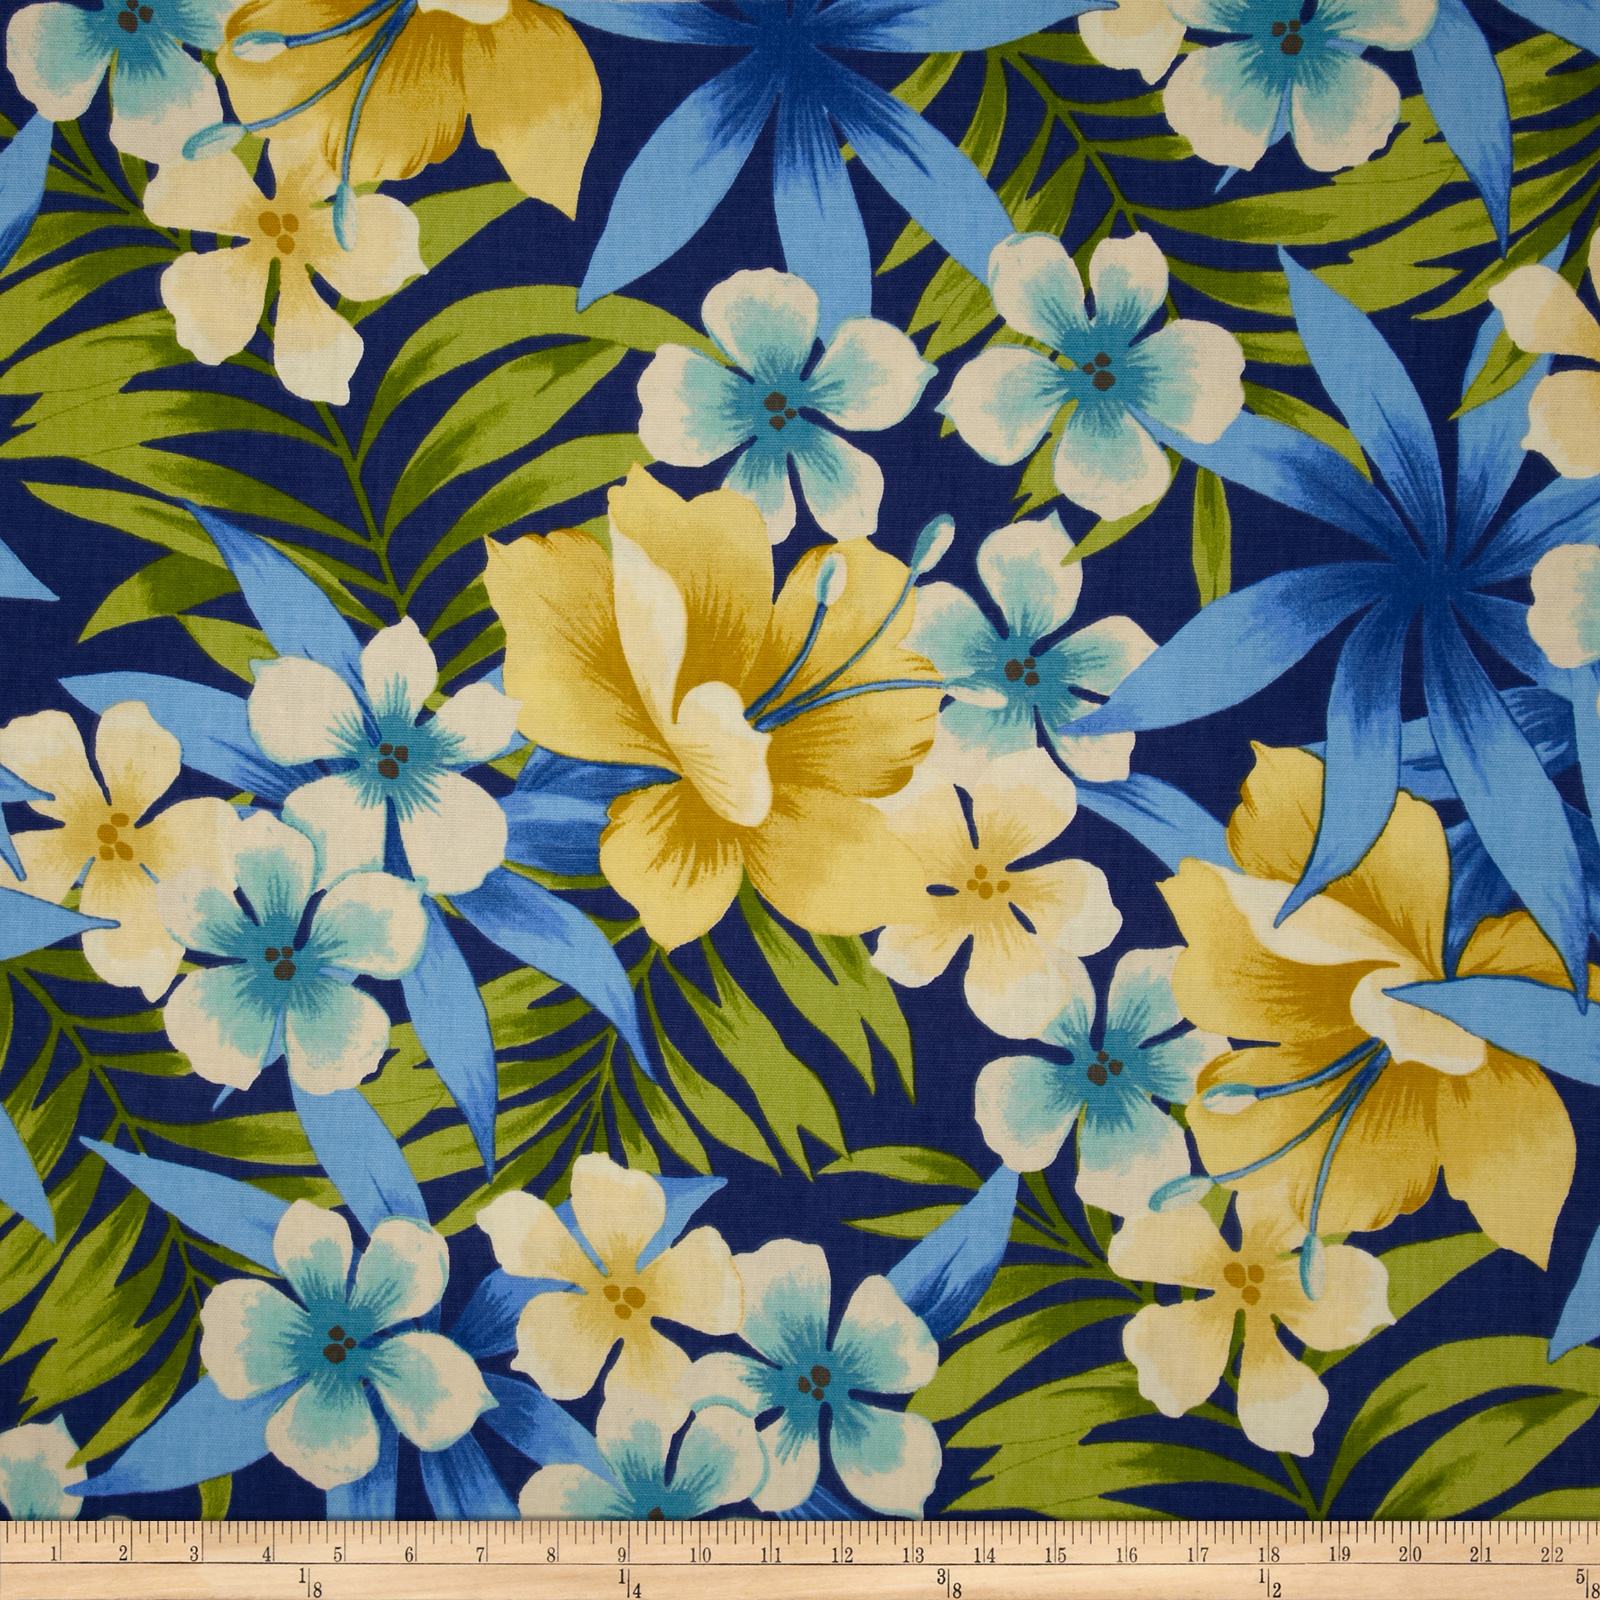 Tommy Bahama Home Sugar Beach Riptide Fabric by Waverly in USA